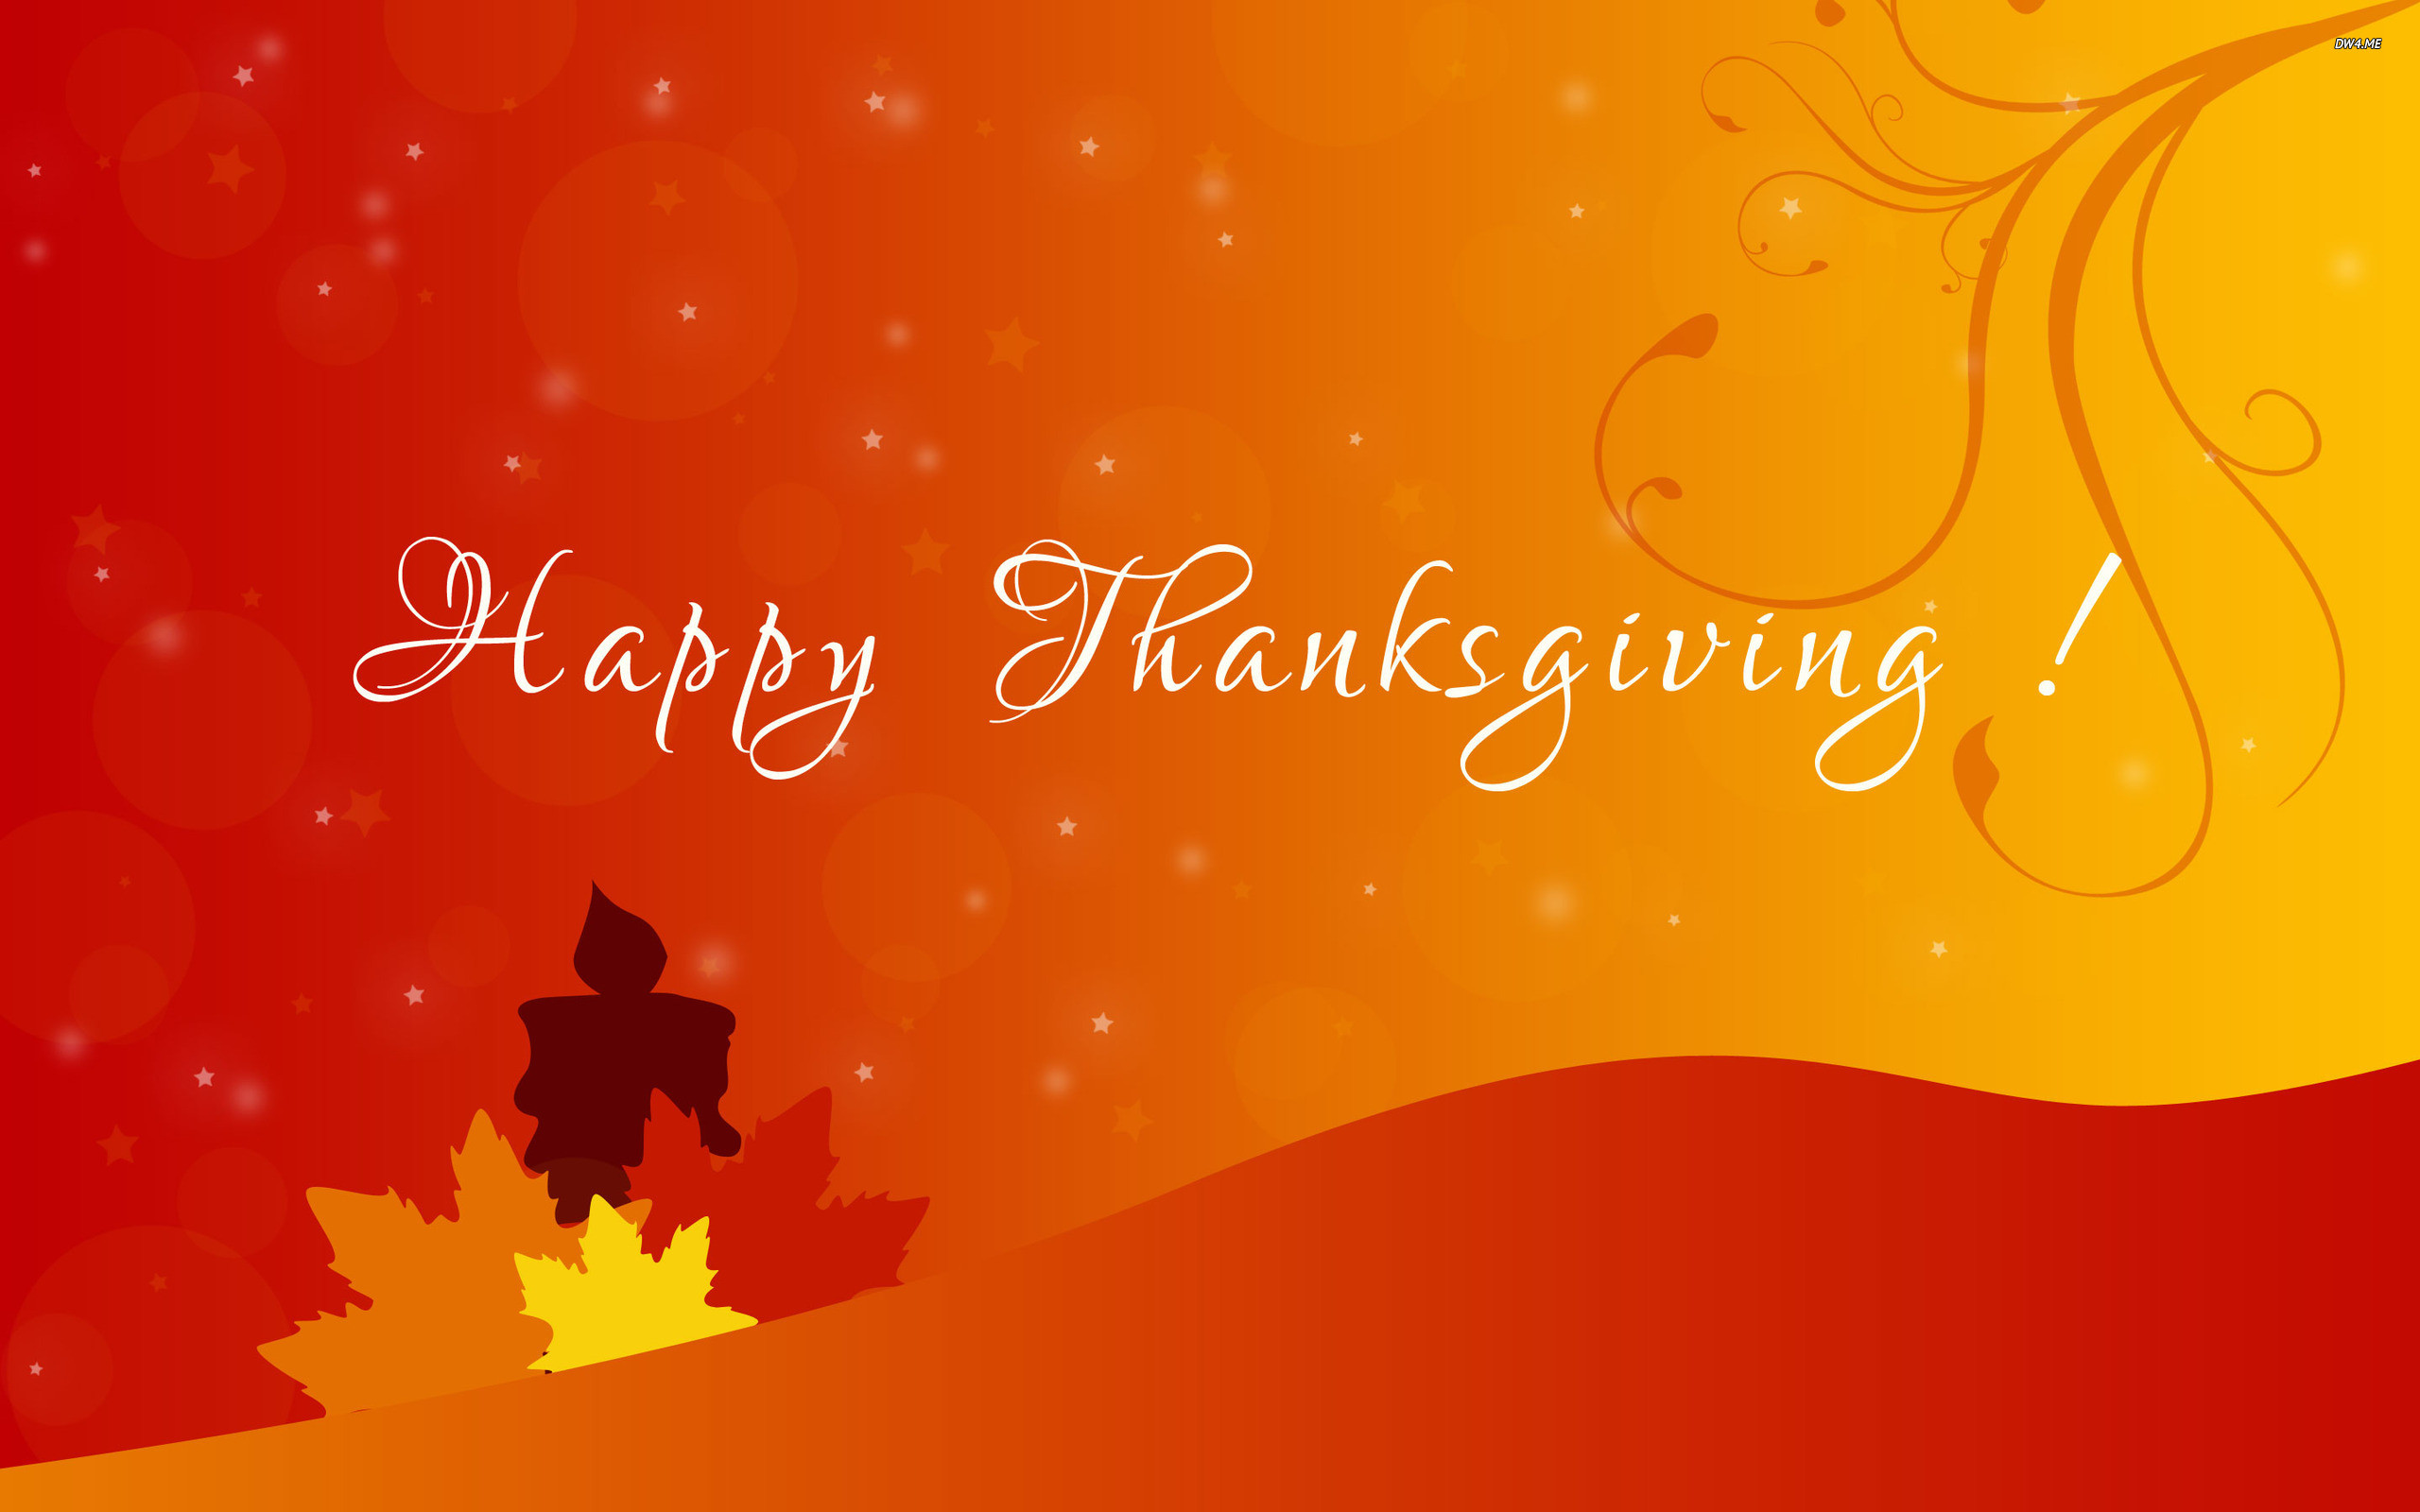 2560x1600 thanksgiving wallpapers desktop. Â«Â«